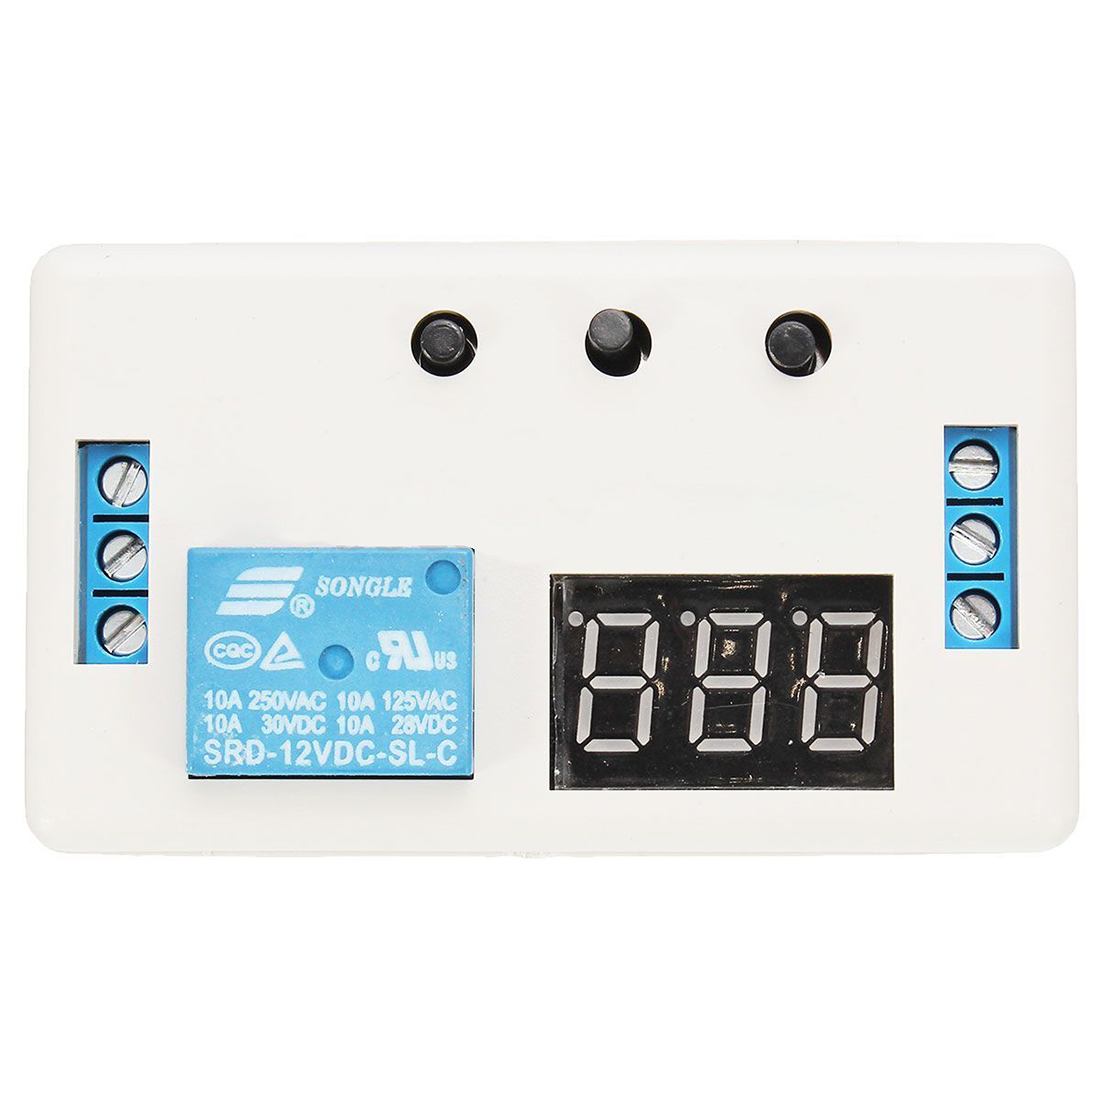 New 12V LED Automation Delay Timer Control Switch Relay Module with case smart 30s timer delay switch us